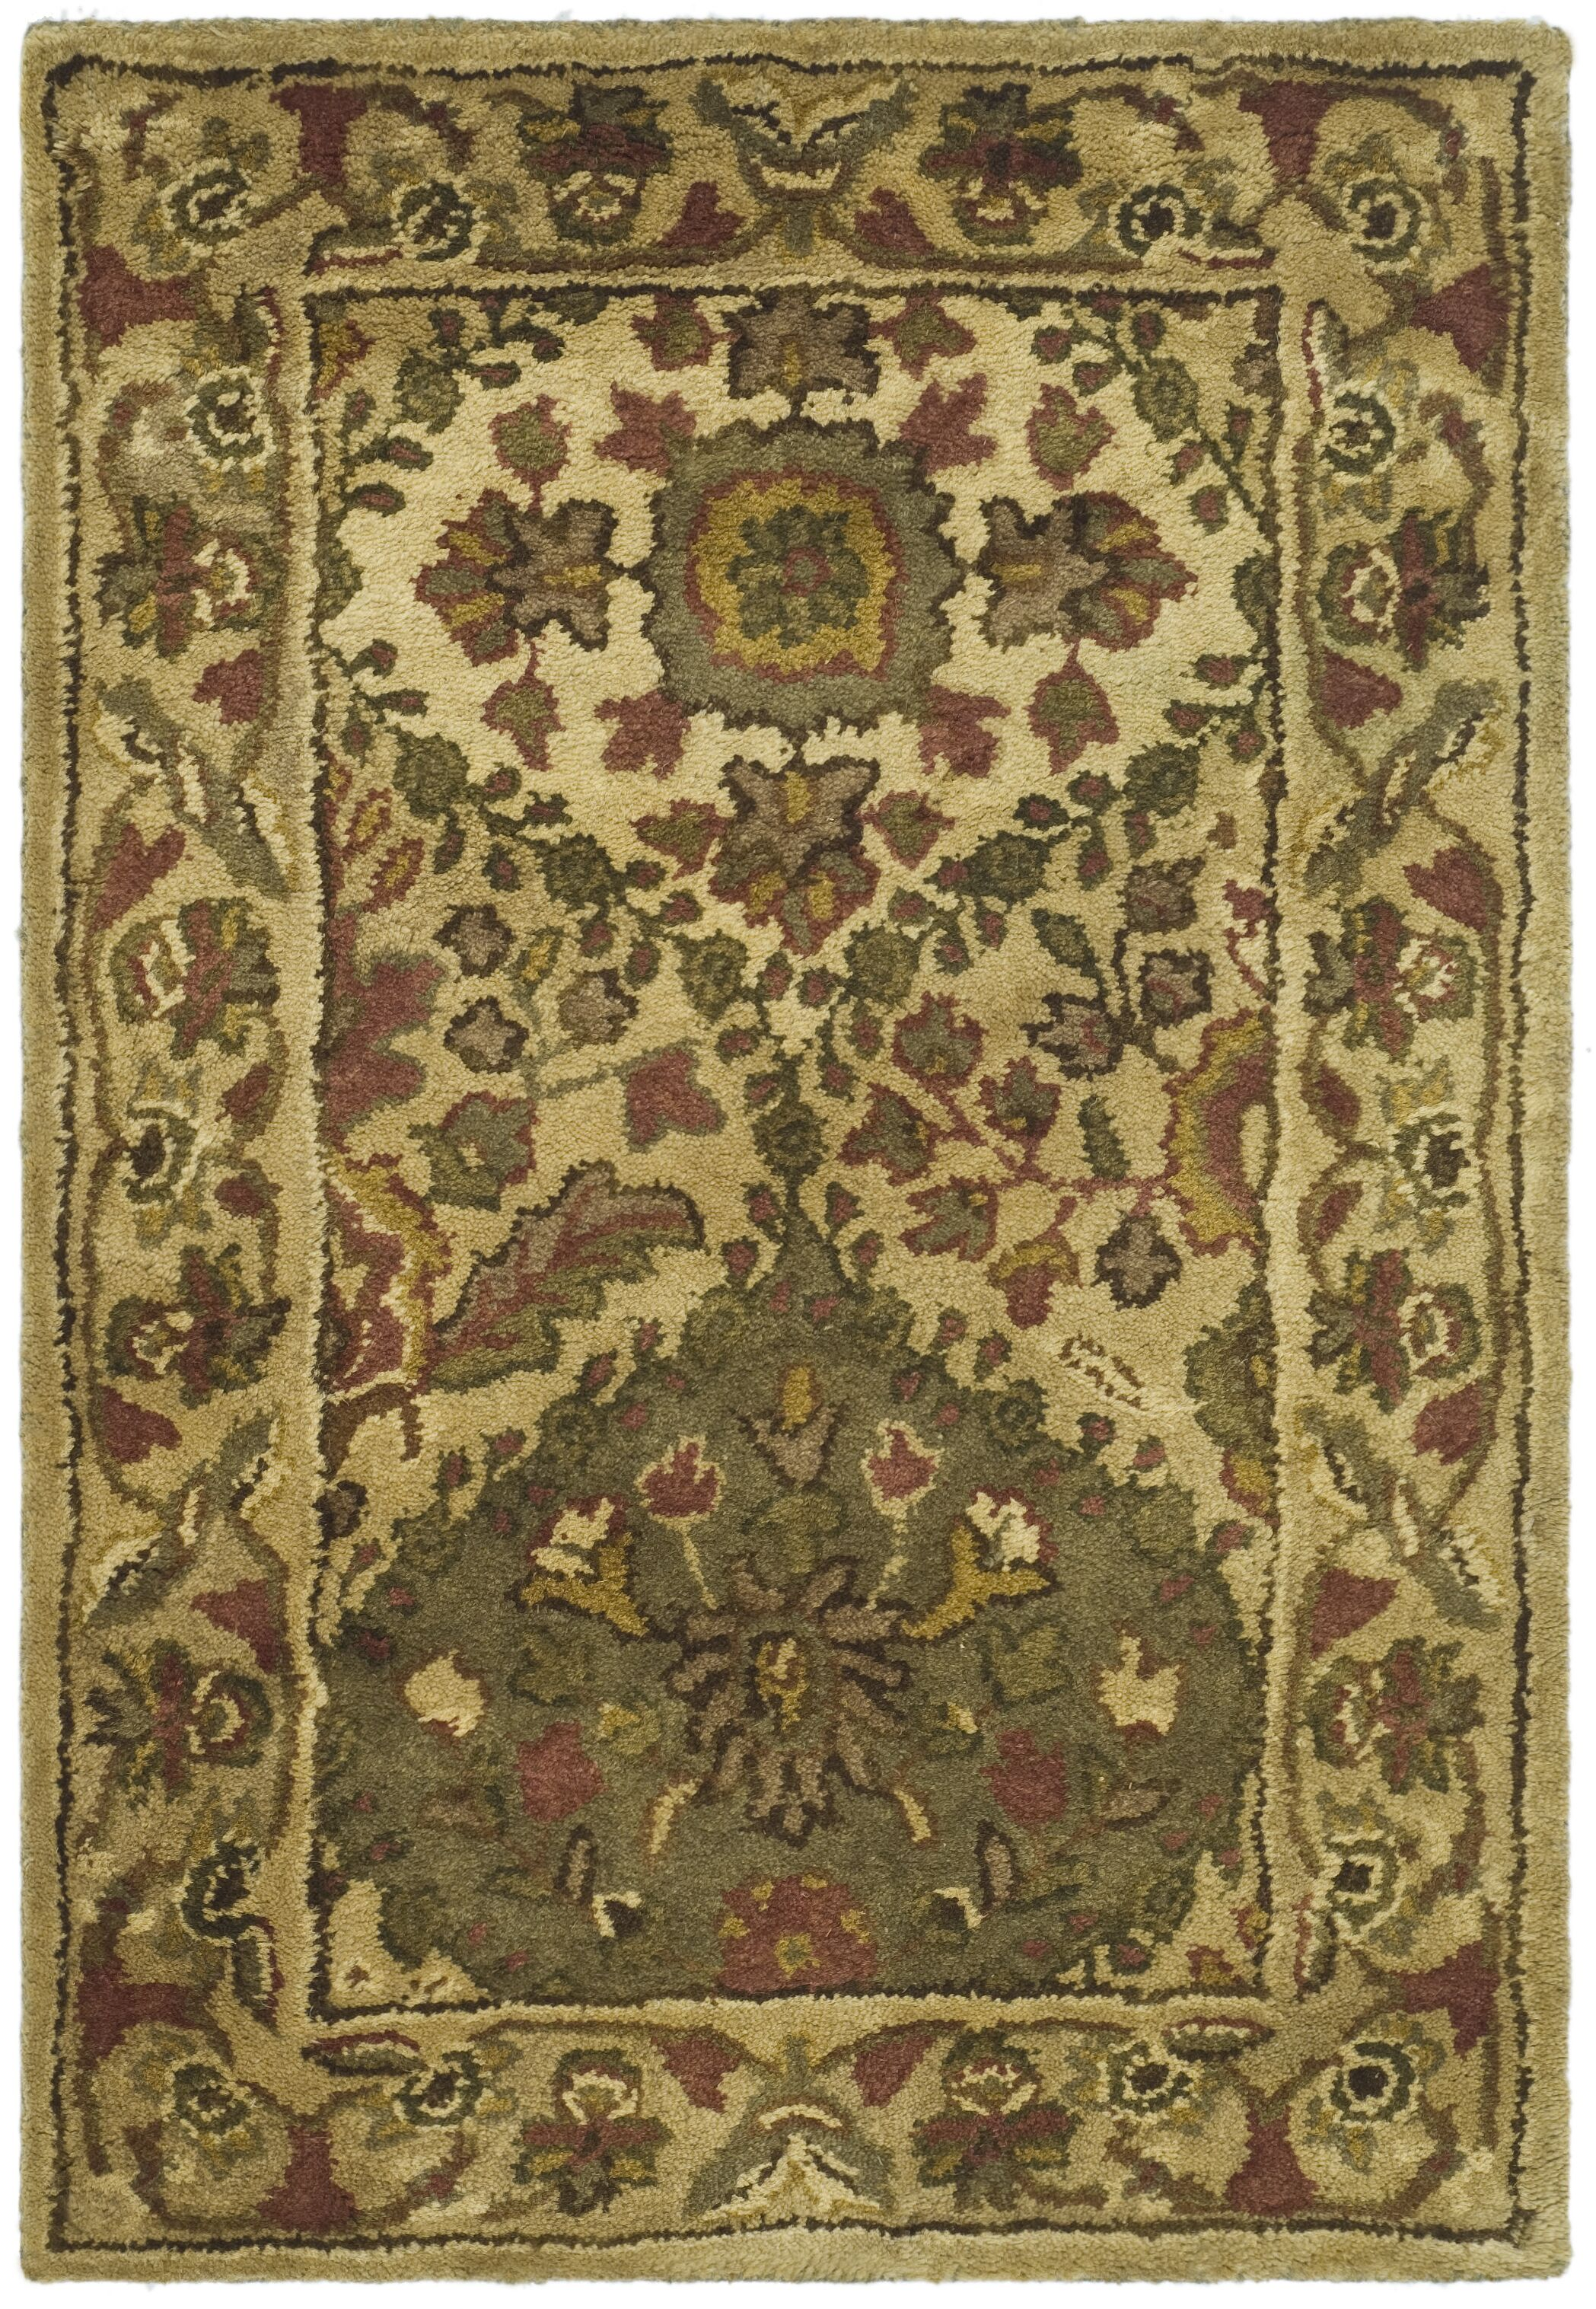 Dunbar Beige/Olive Area Rug Rug Size: Rectangle 7'6